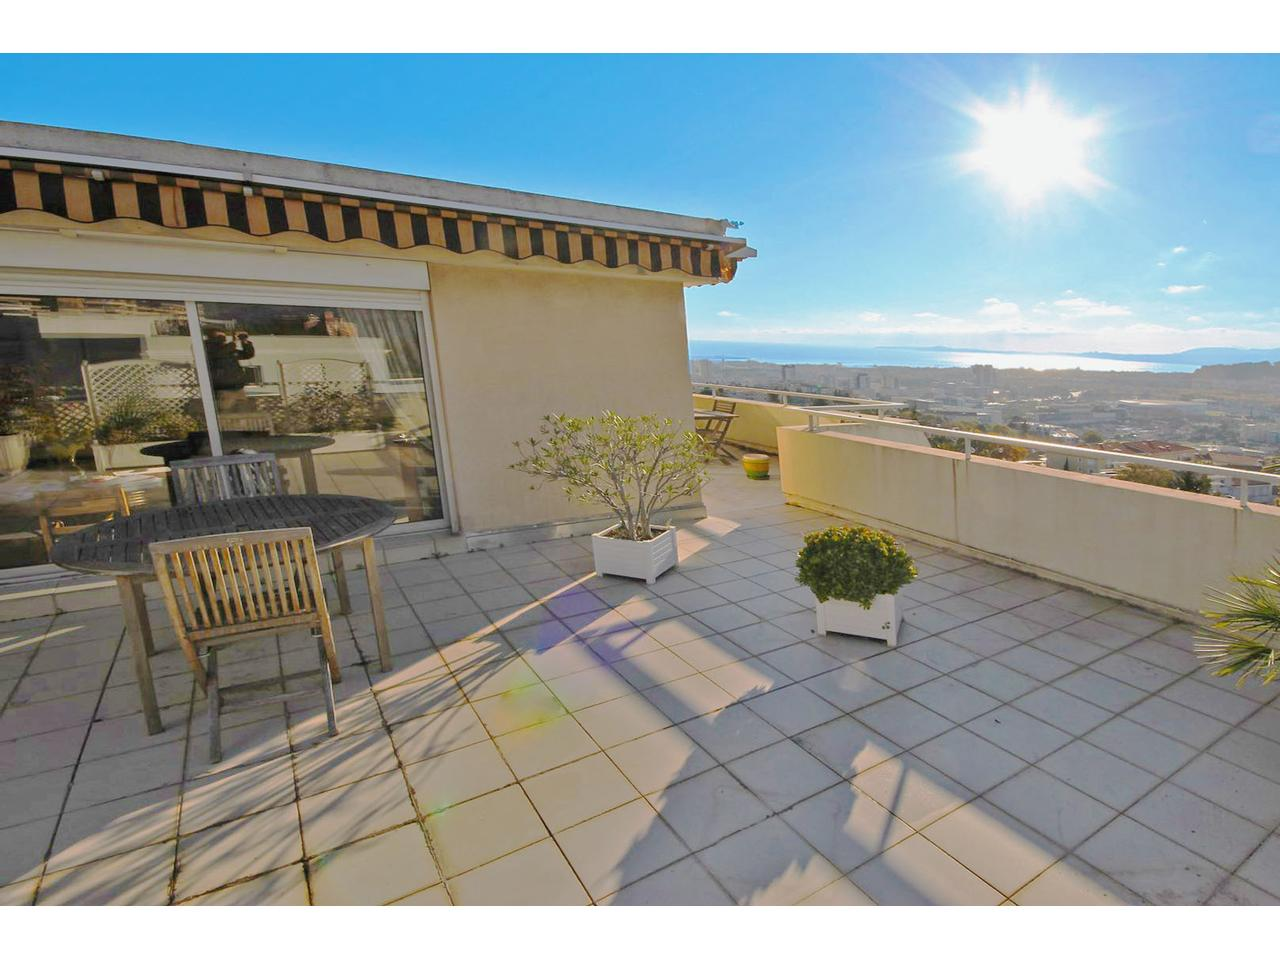 Vente Appartement Nice Immobilier Nice Vue Mer